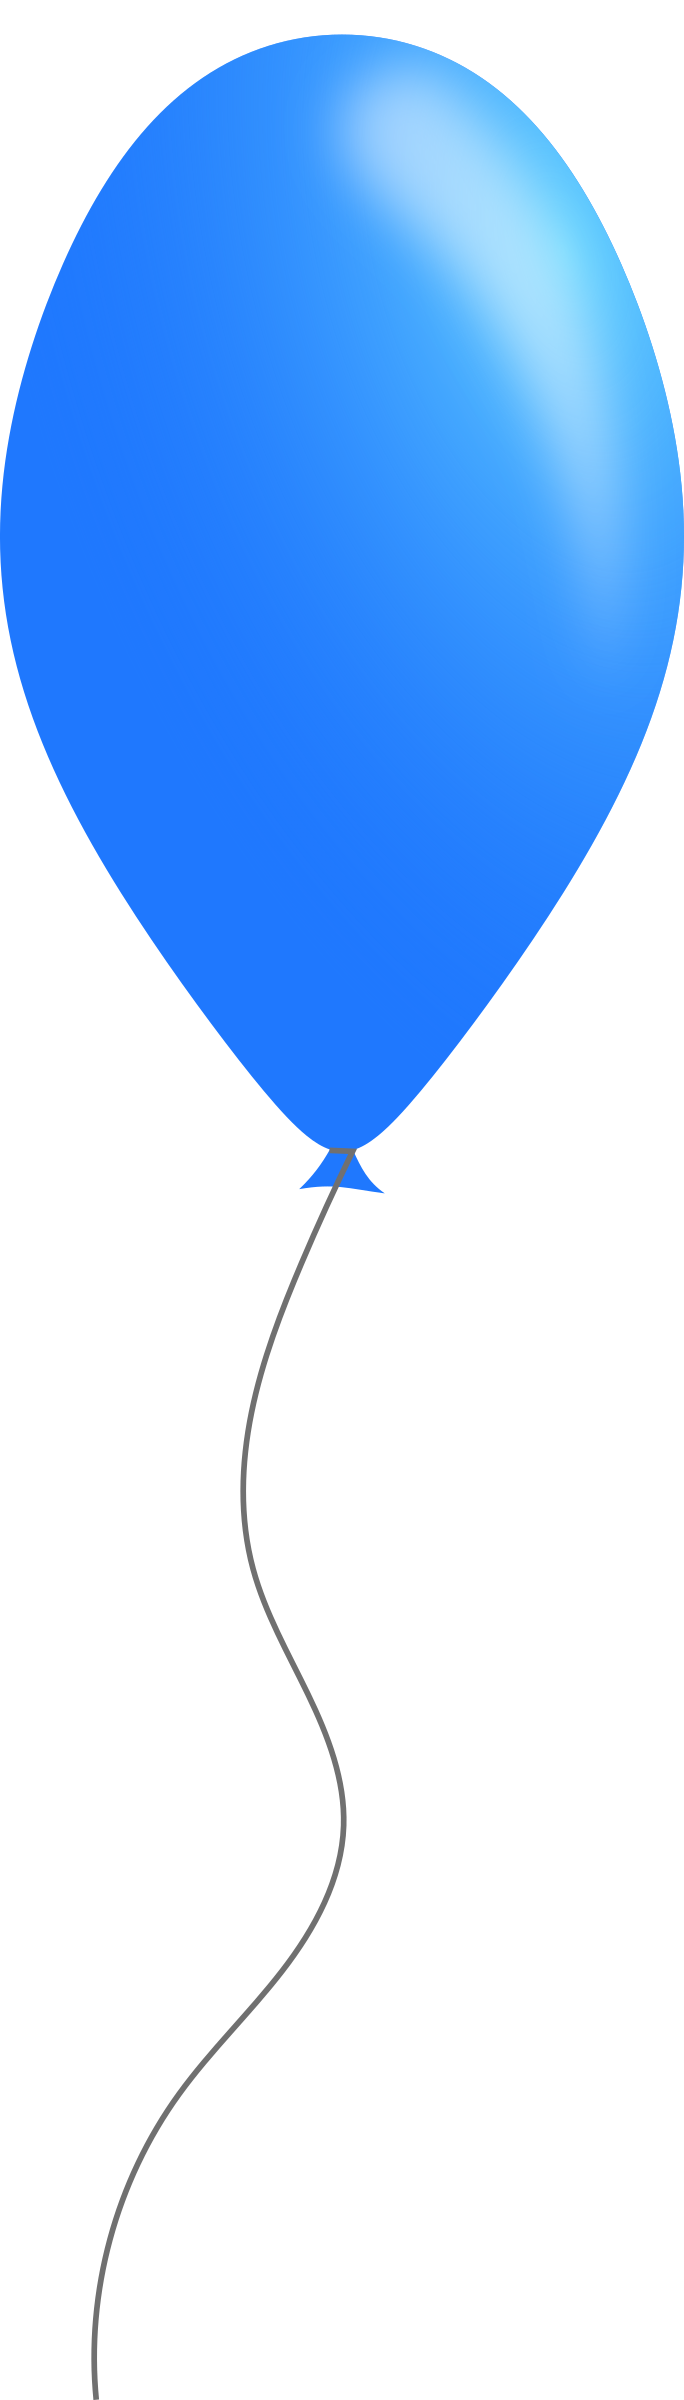 Blue balloon by Caig